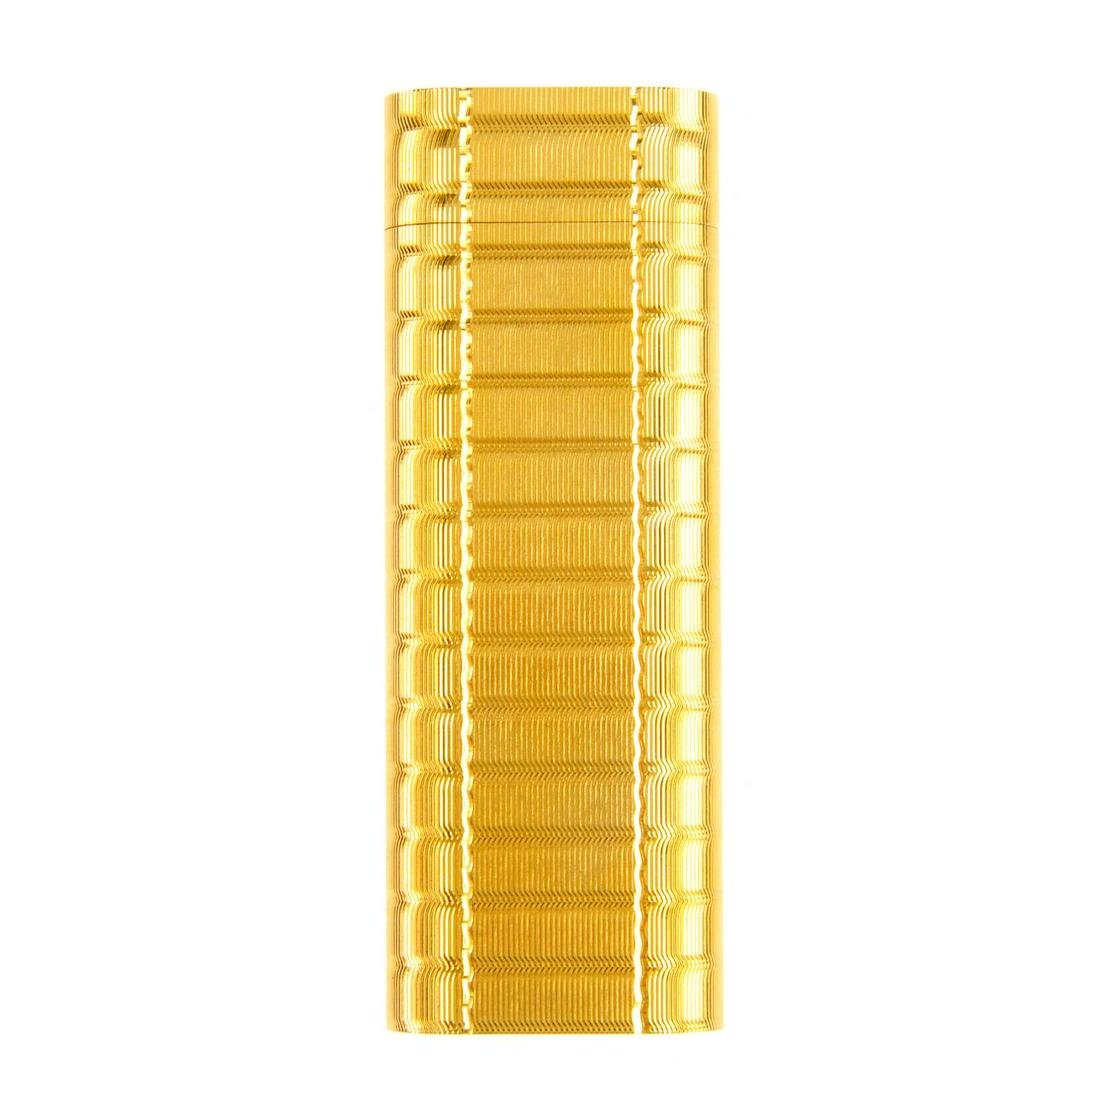 CARTIER - a gold plated lighter. With engine turned